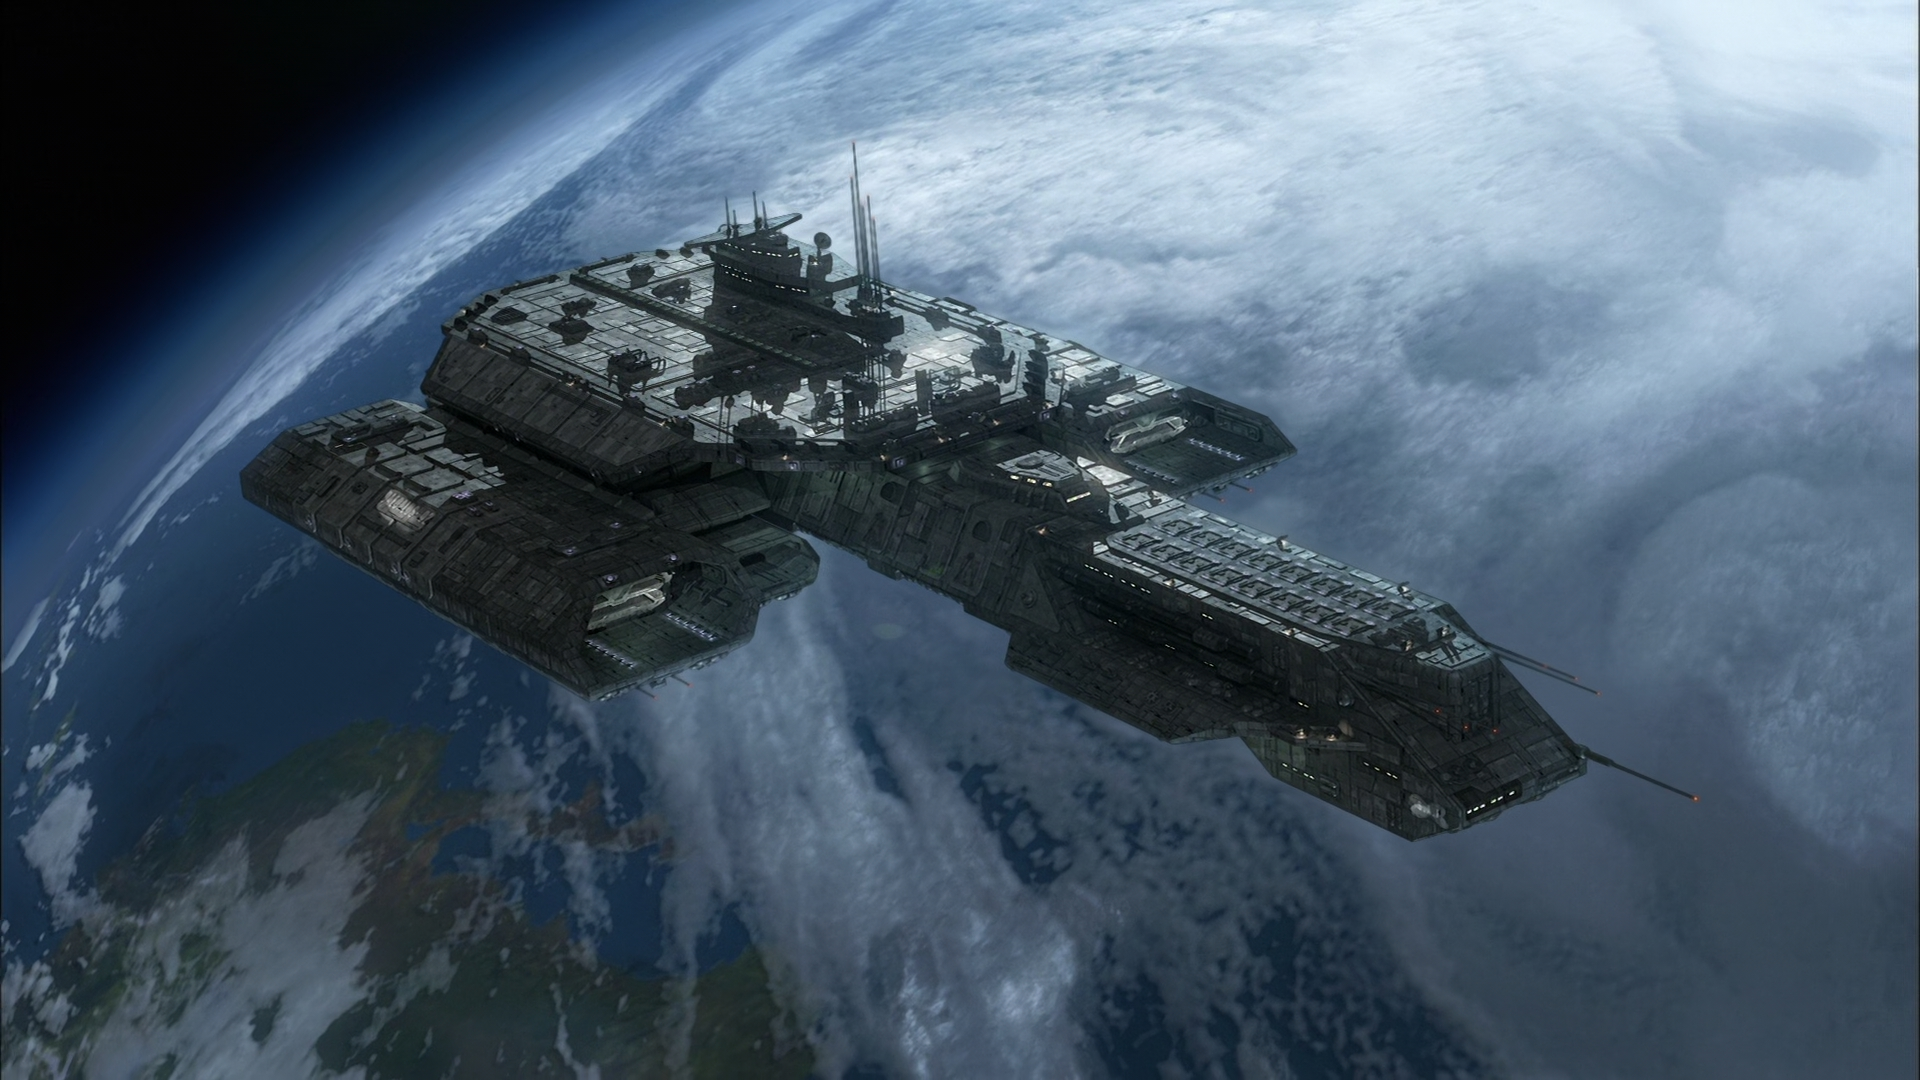 http://img3.wikia.nocookie.net/__cb20130615182803/stargate/images/0/03/Daedalus.jpg